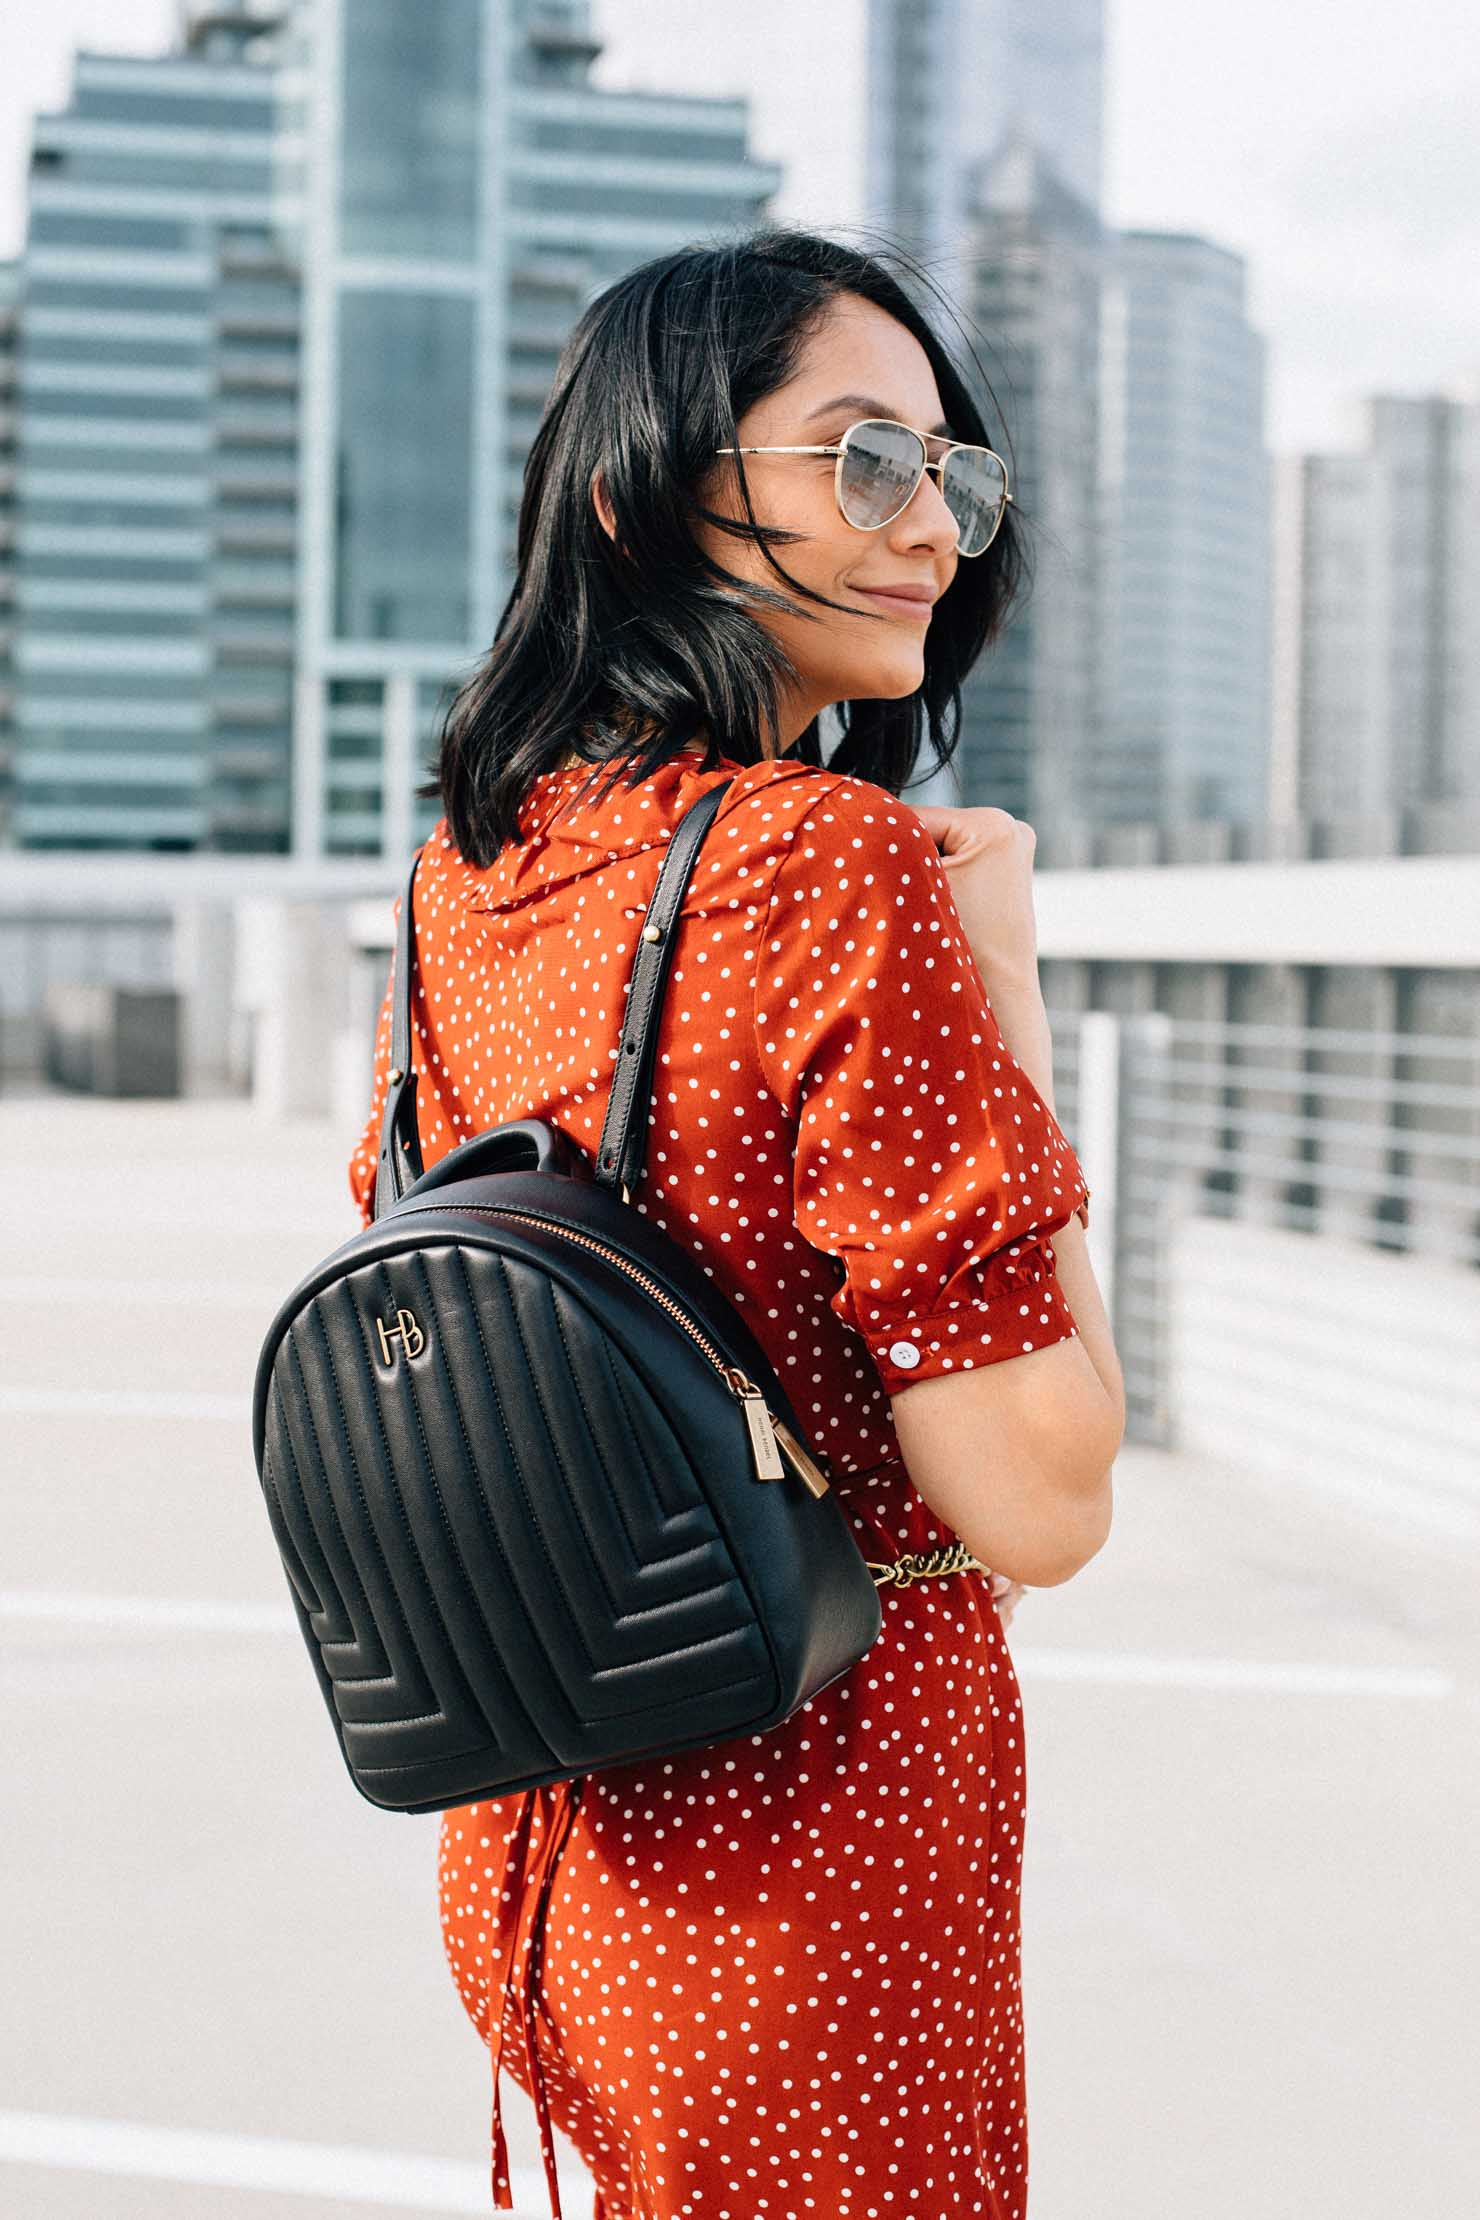 Style blogger Lilly Beltran of Daily Craving blog wearing a red polka dot dress from chic wish and a Henri Bendel Backpack purse